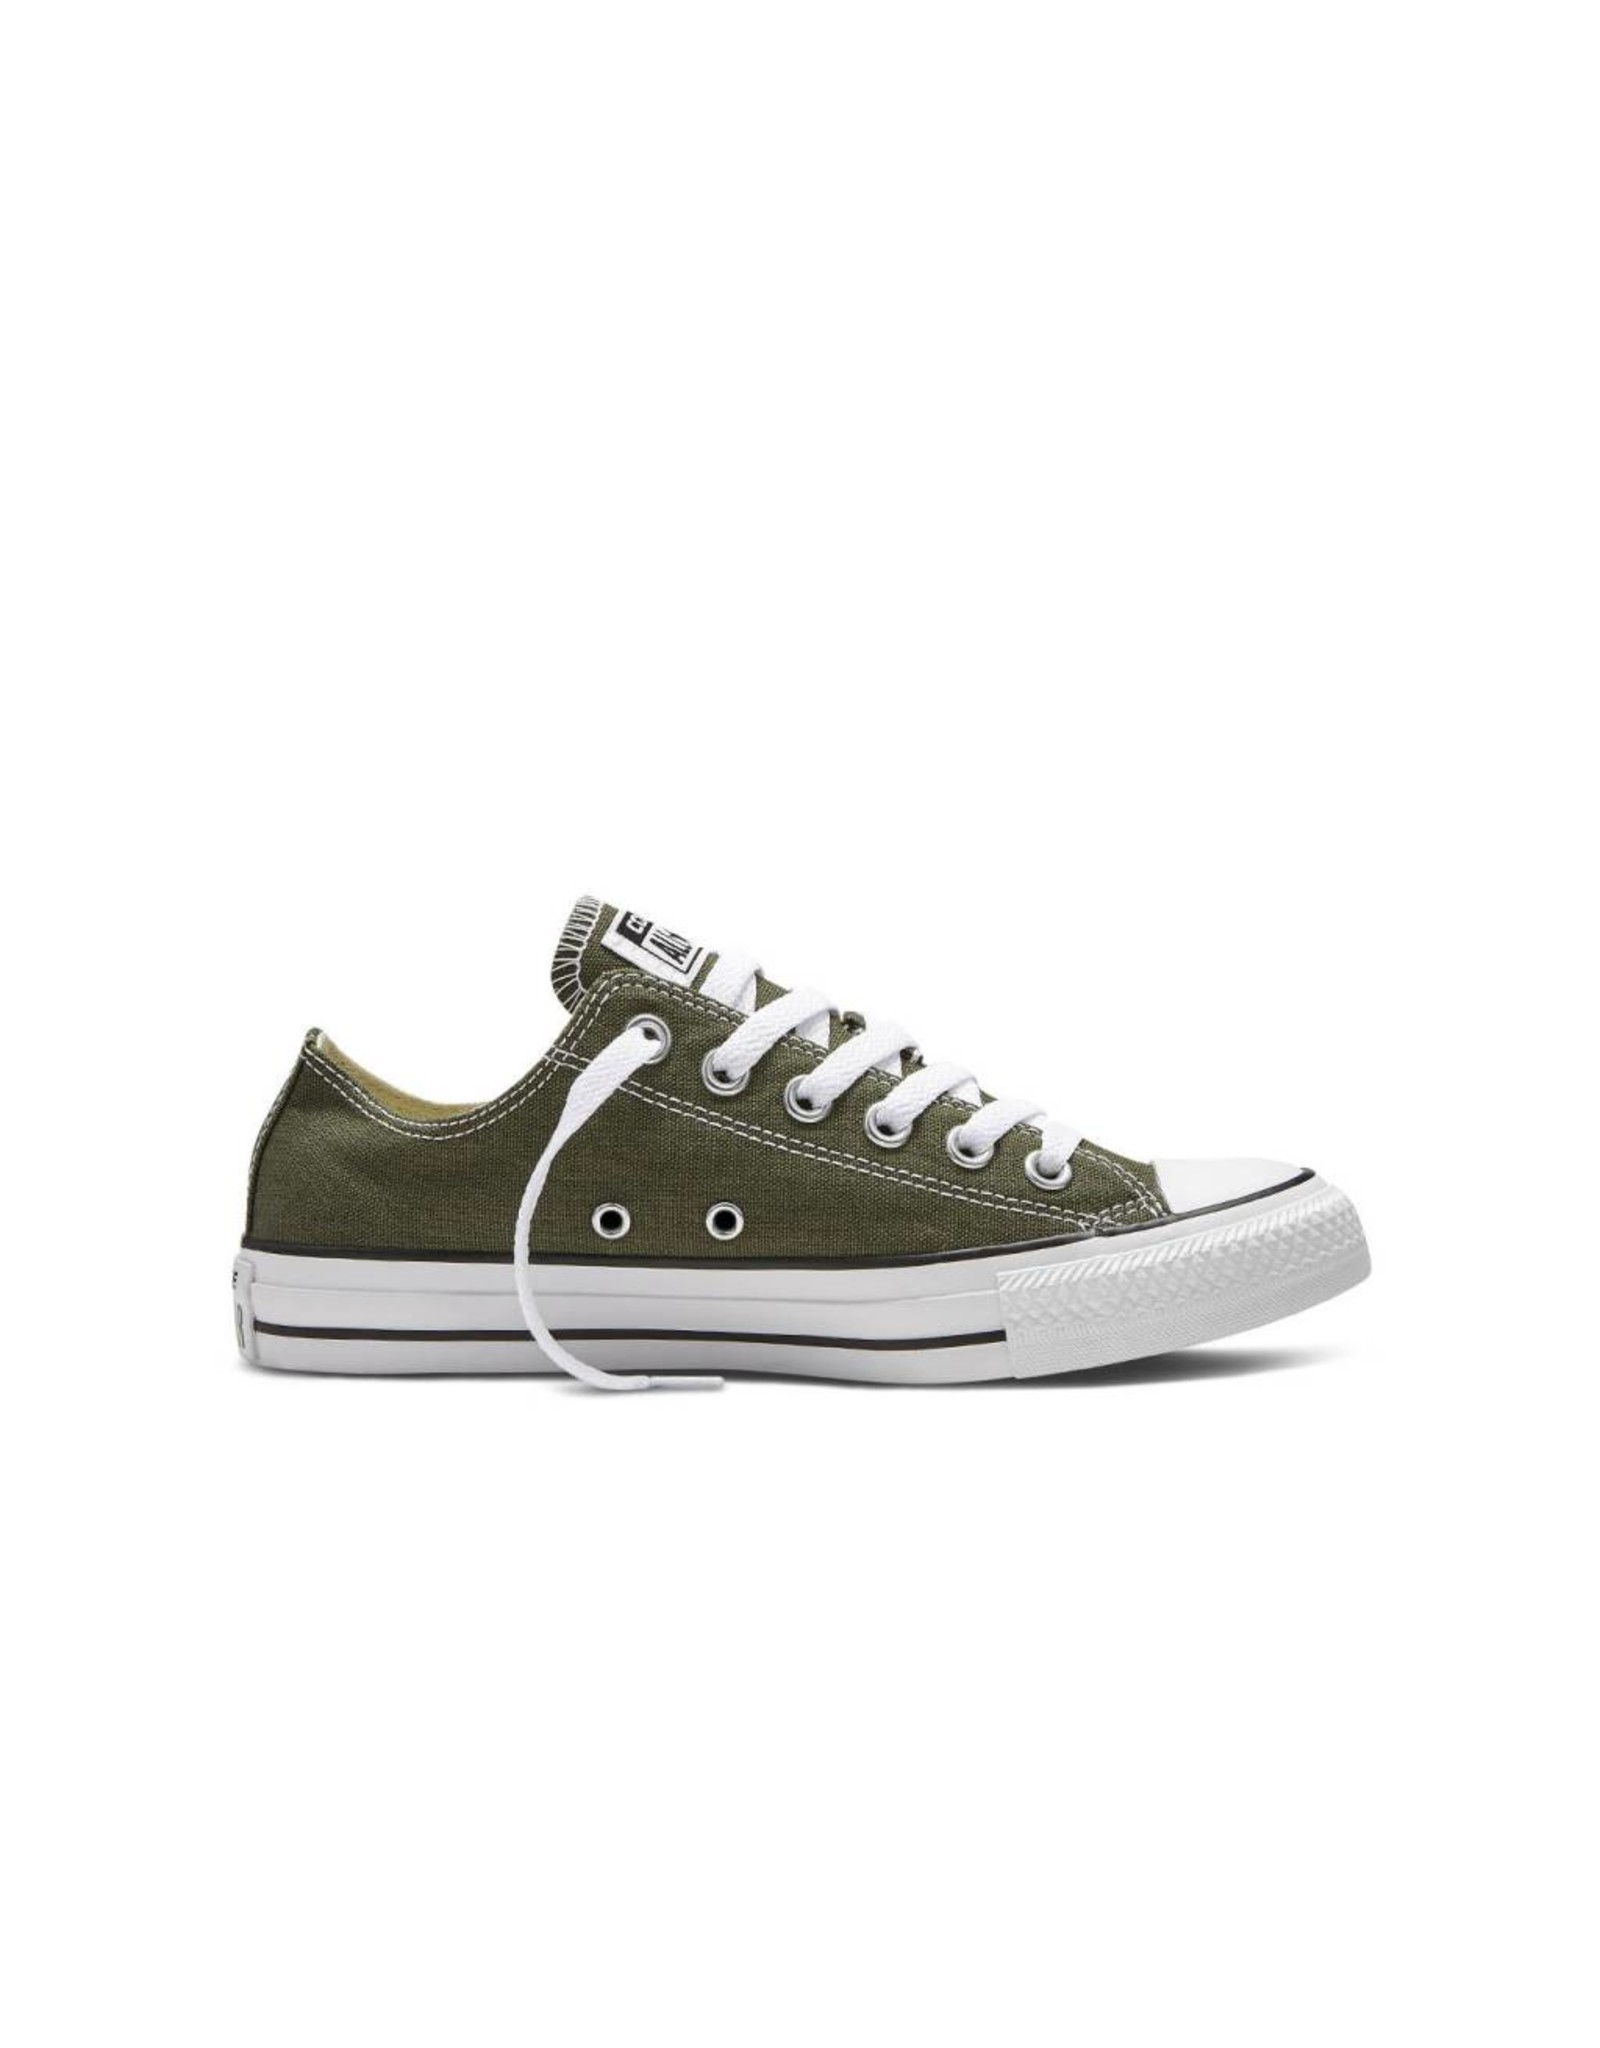 CONVERSE Chuck Taylor All Star  OX HERBAL C10HERB-151184C